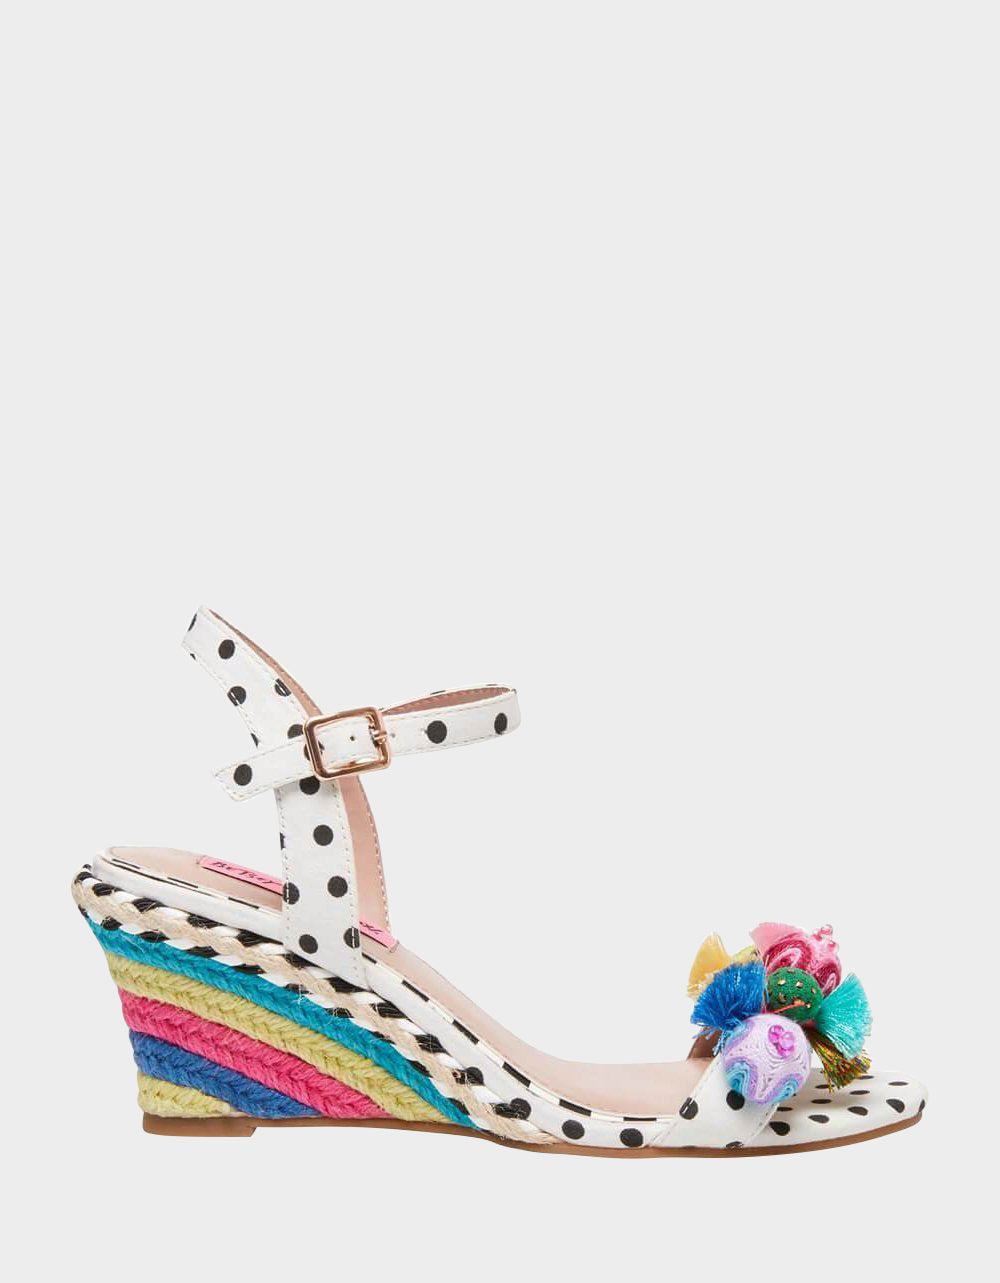 KOKO WHITE MULTI - SHOES - Betsey Johnson